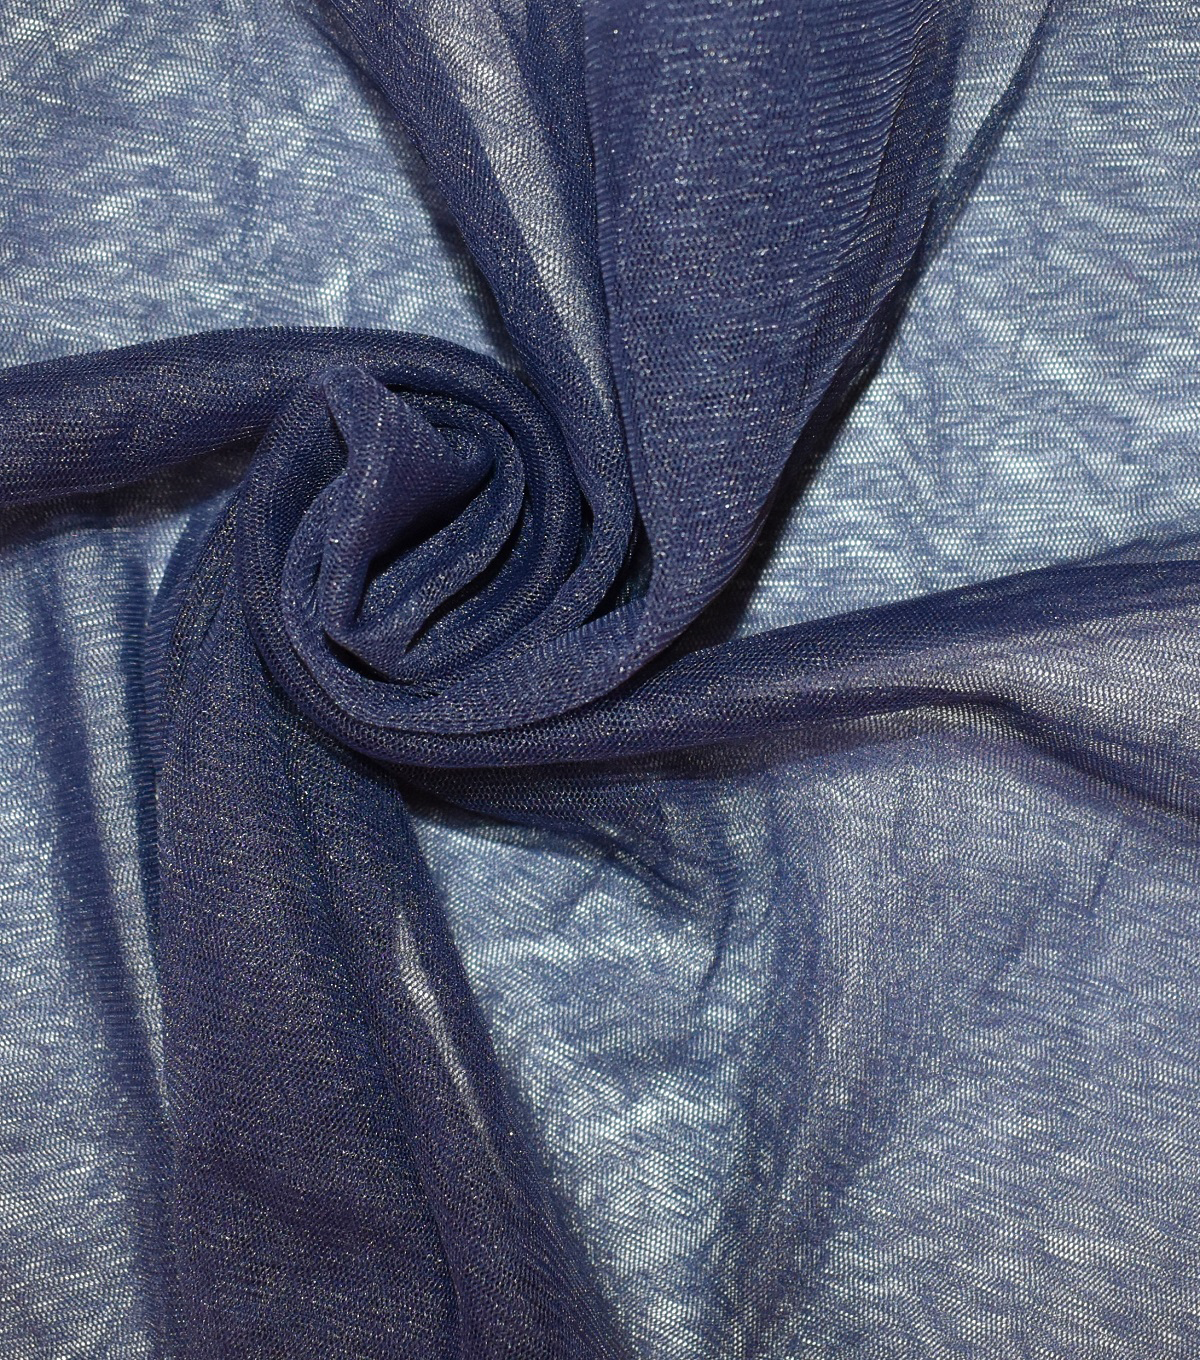 Casa Collection Solid Tulle Fabric 57\u0027\u0027, Evening Blue